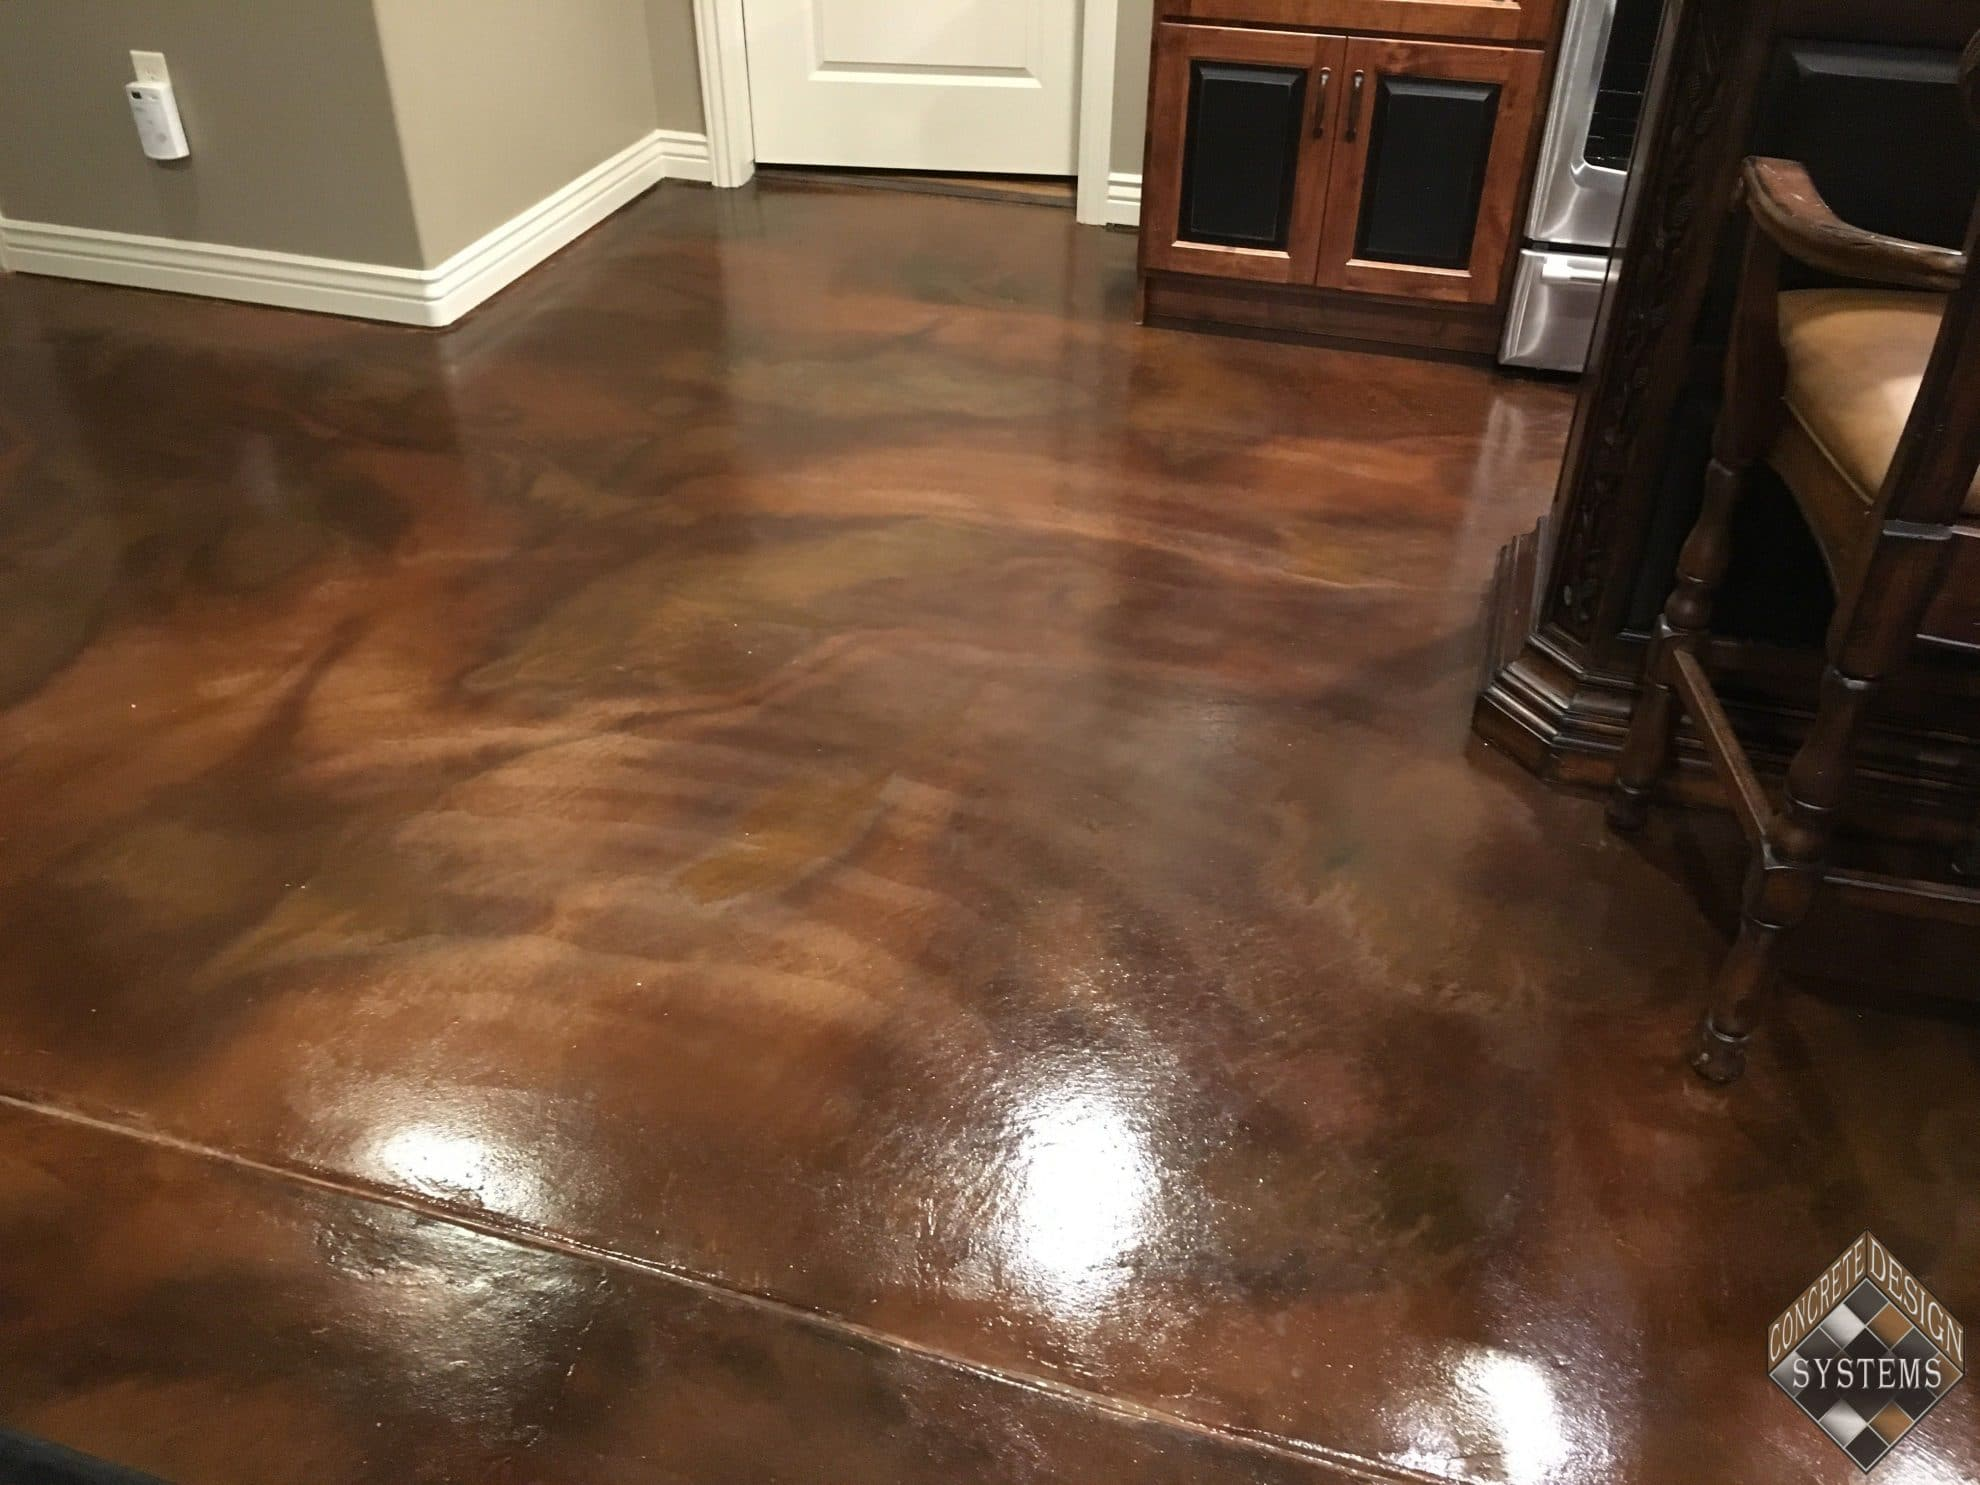 Walnut Amber Acid Stained Basement Floor Concrete Design Systems Salt Lake City Utah